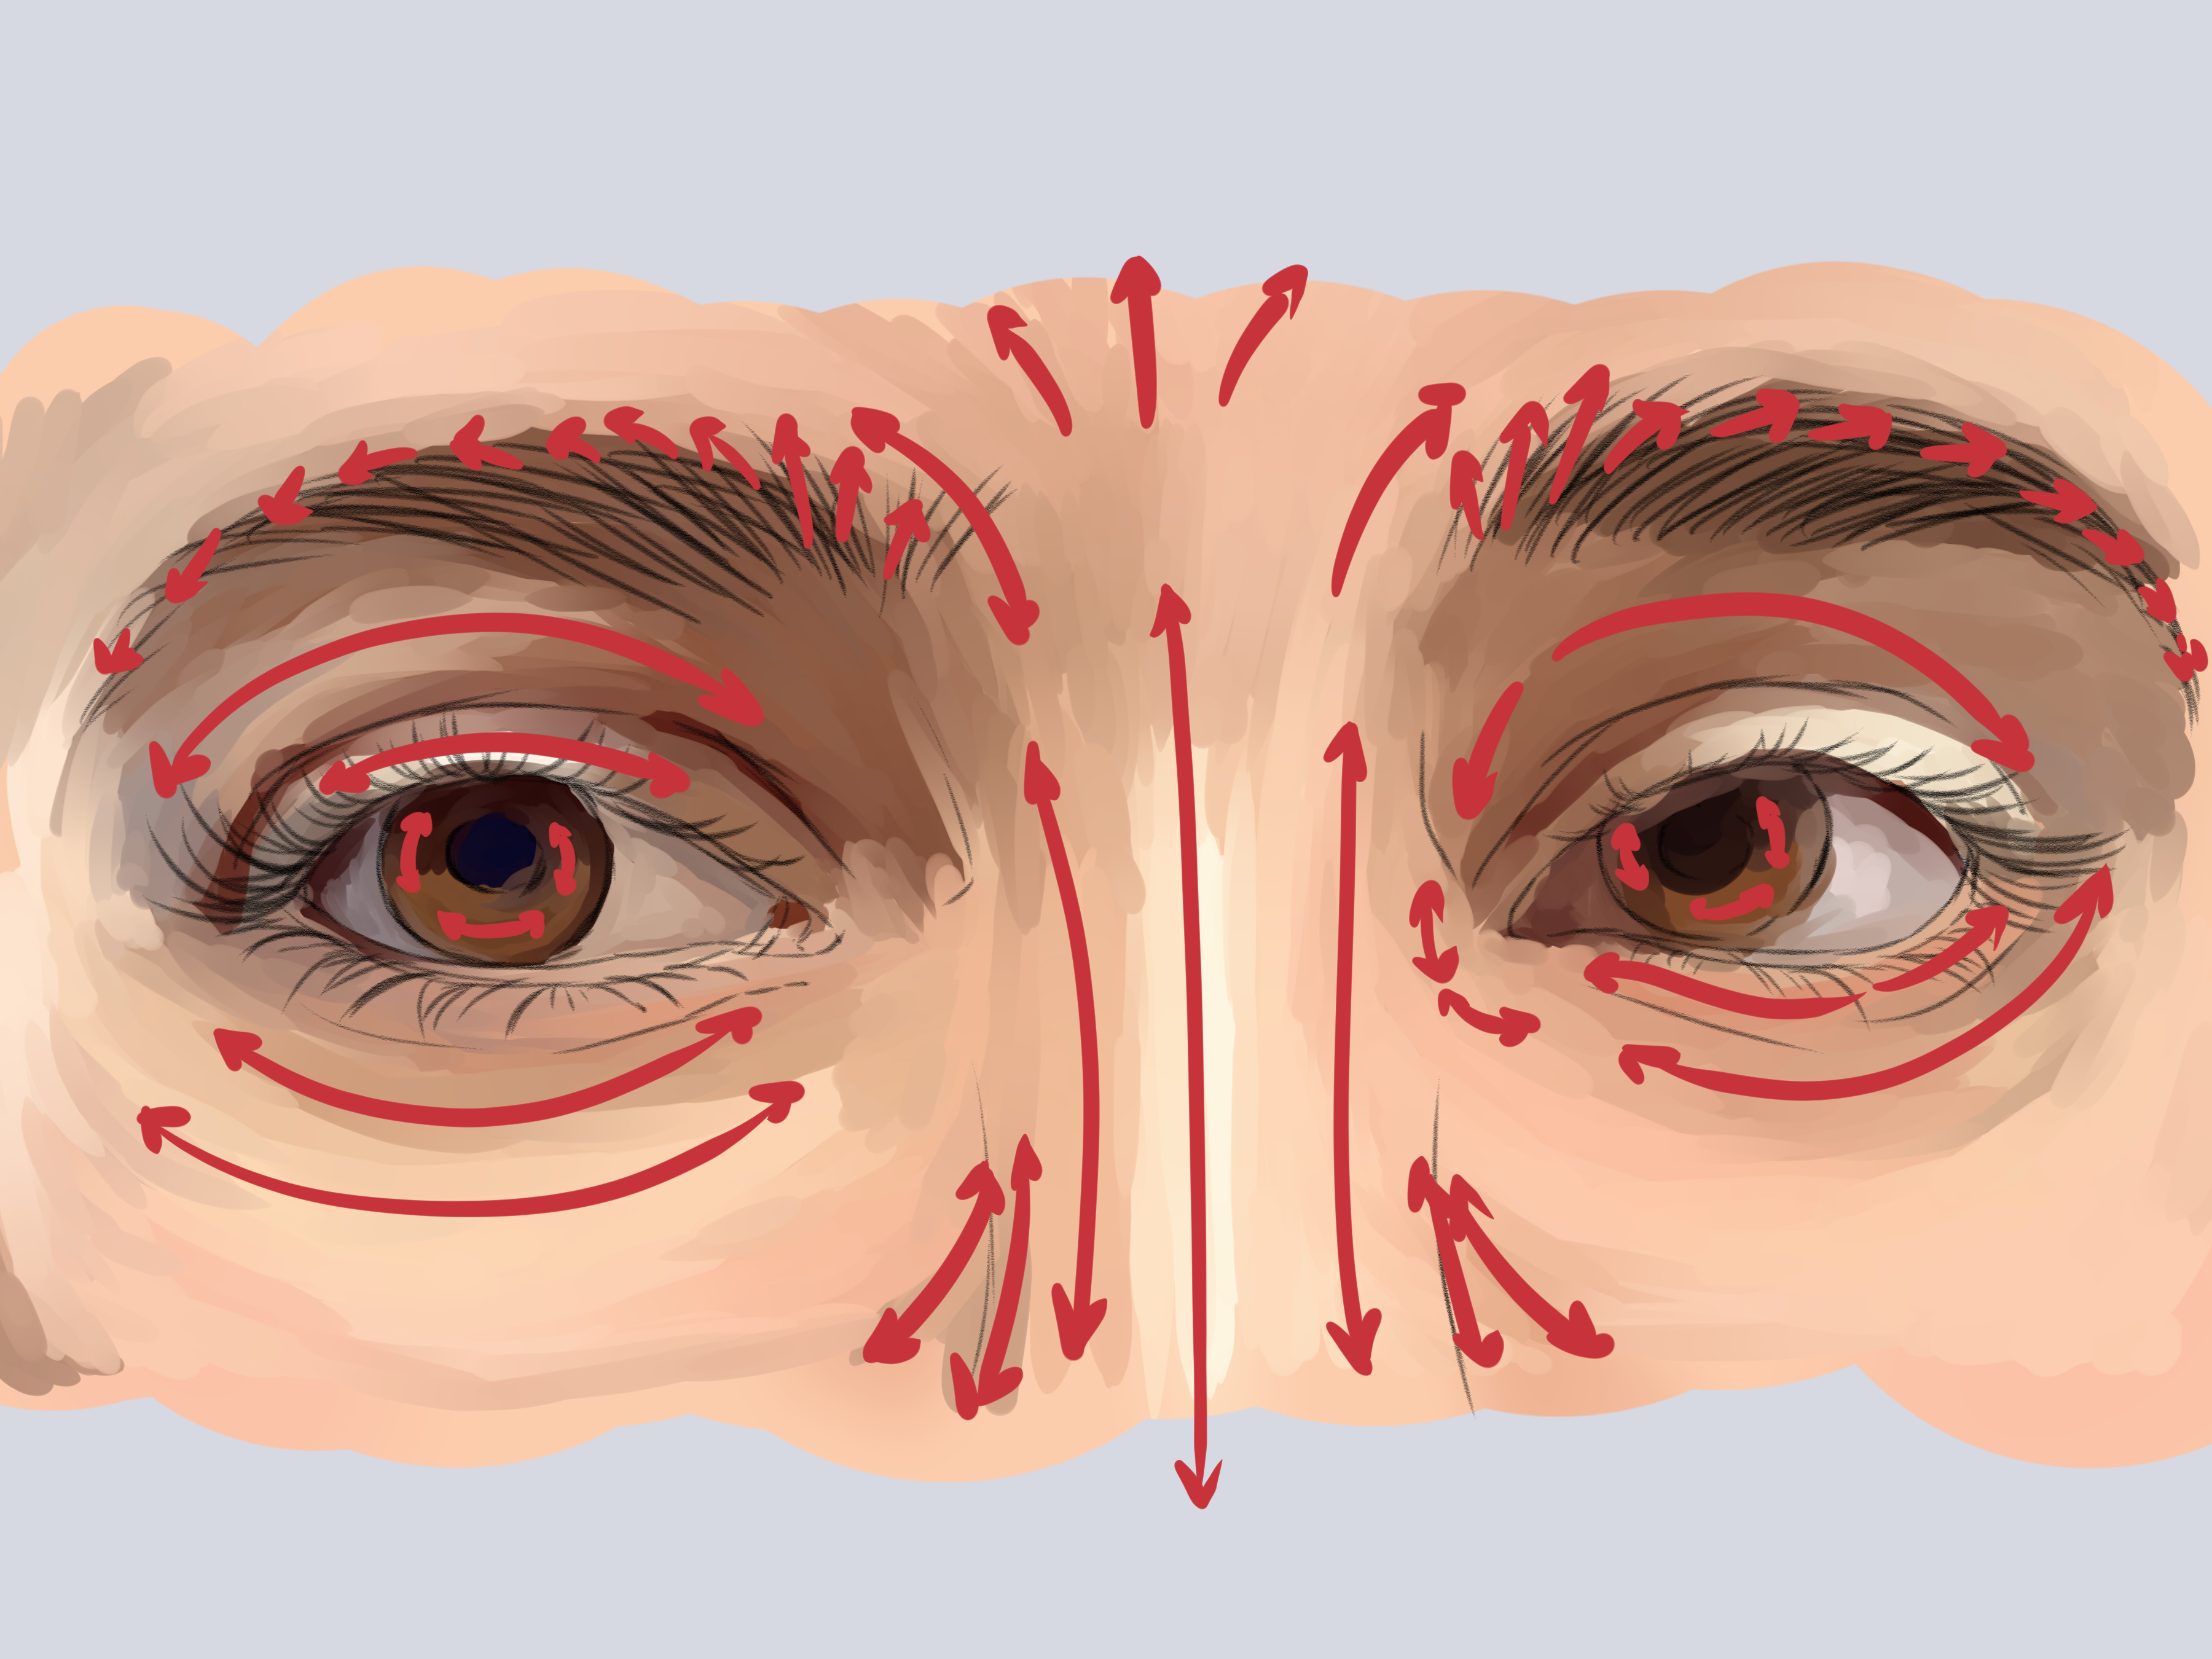 Drawing Realistic And Anime Style Eyes By Ecao Clip Studio Tips